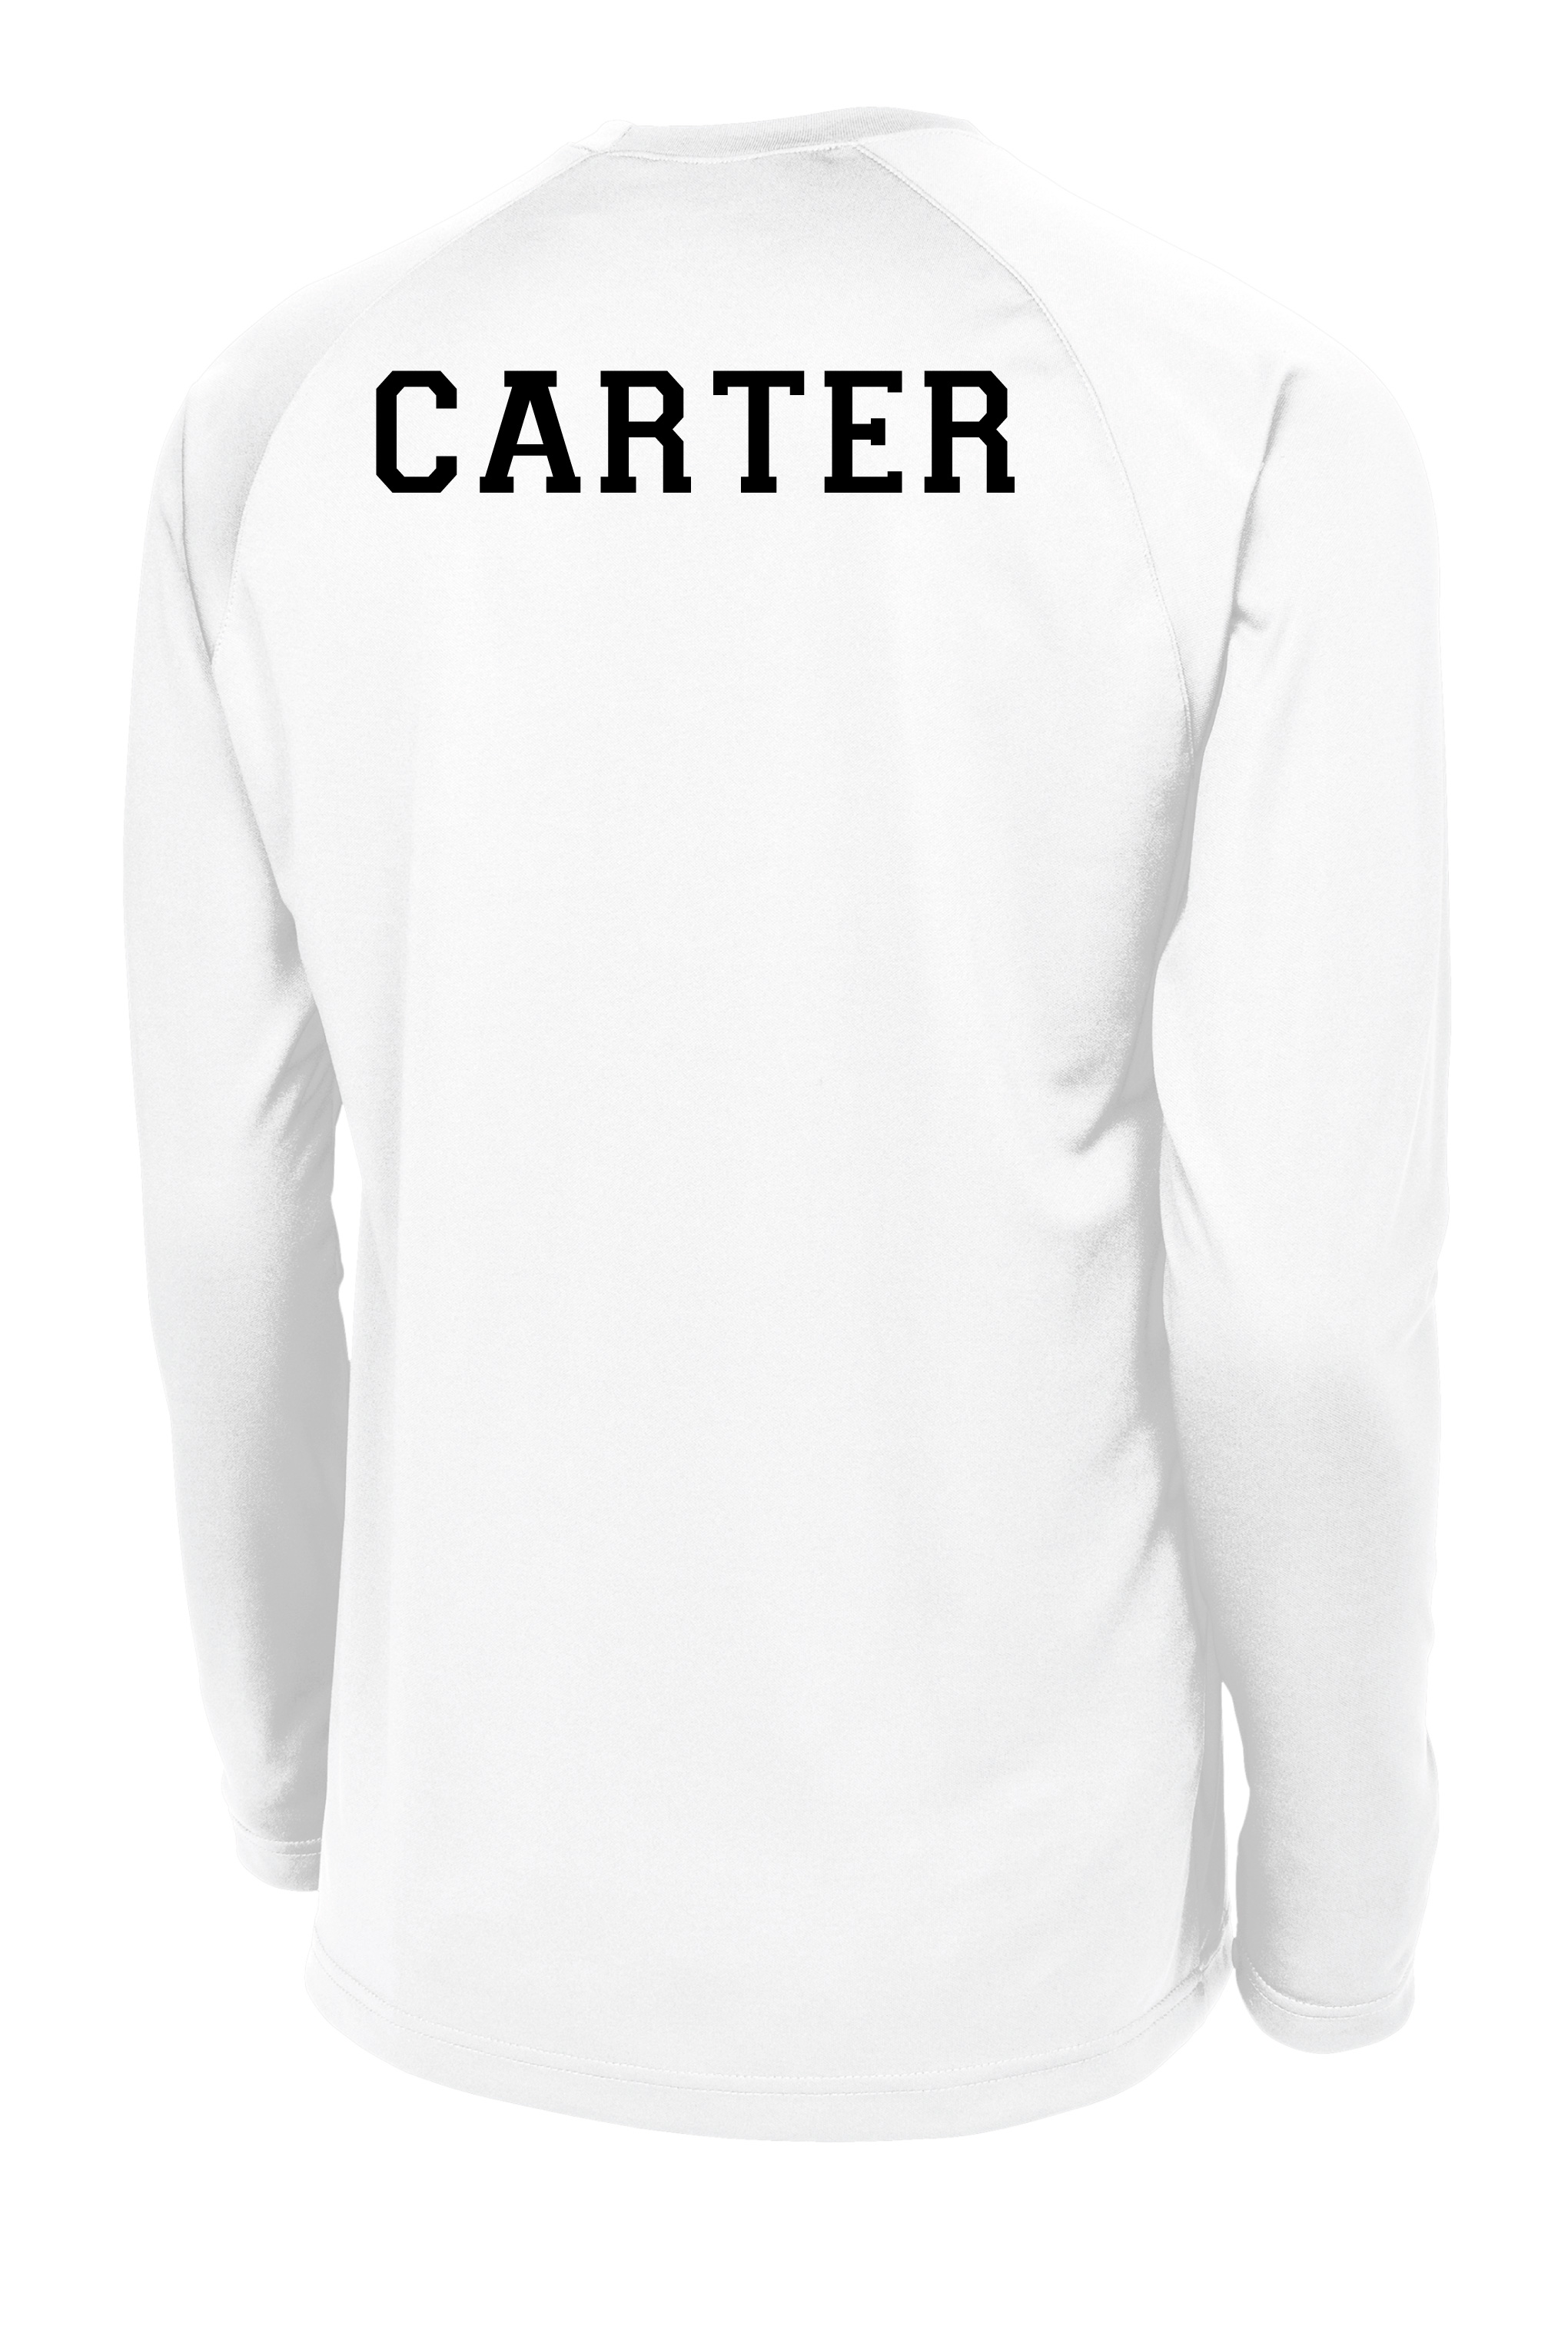 C4 long sleeve basketball shooting shirt with name on back in white by Code Four Athletics